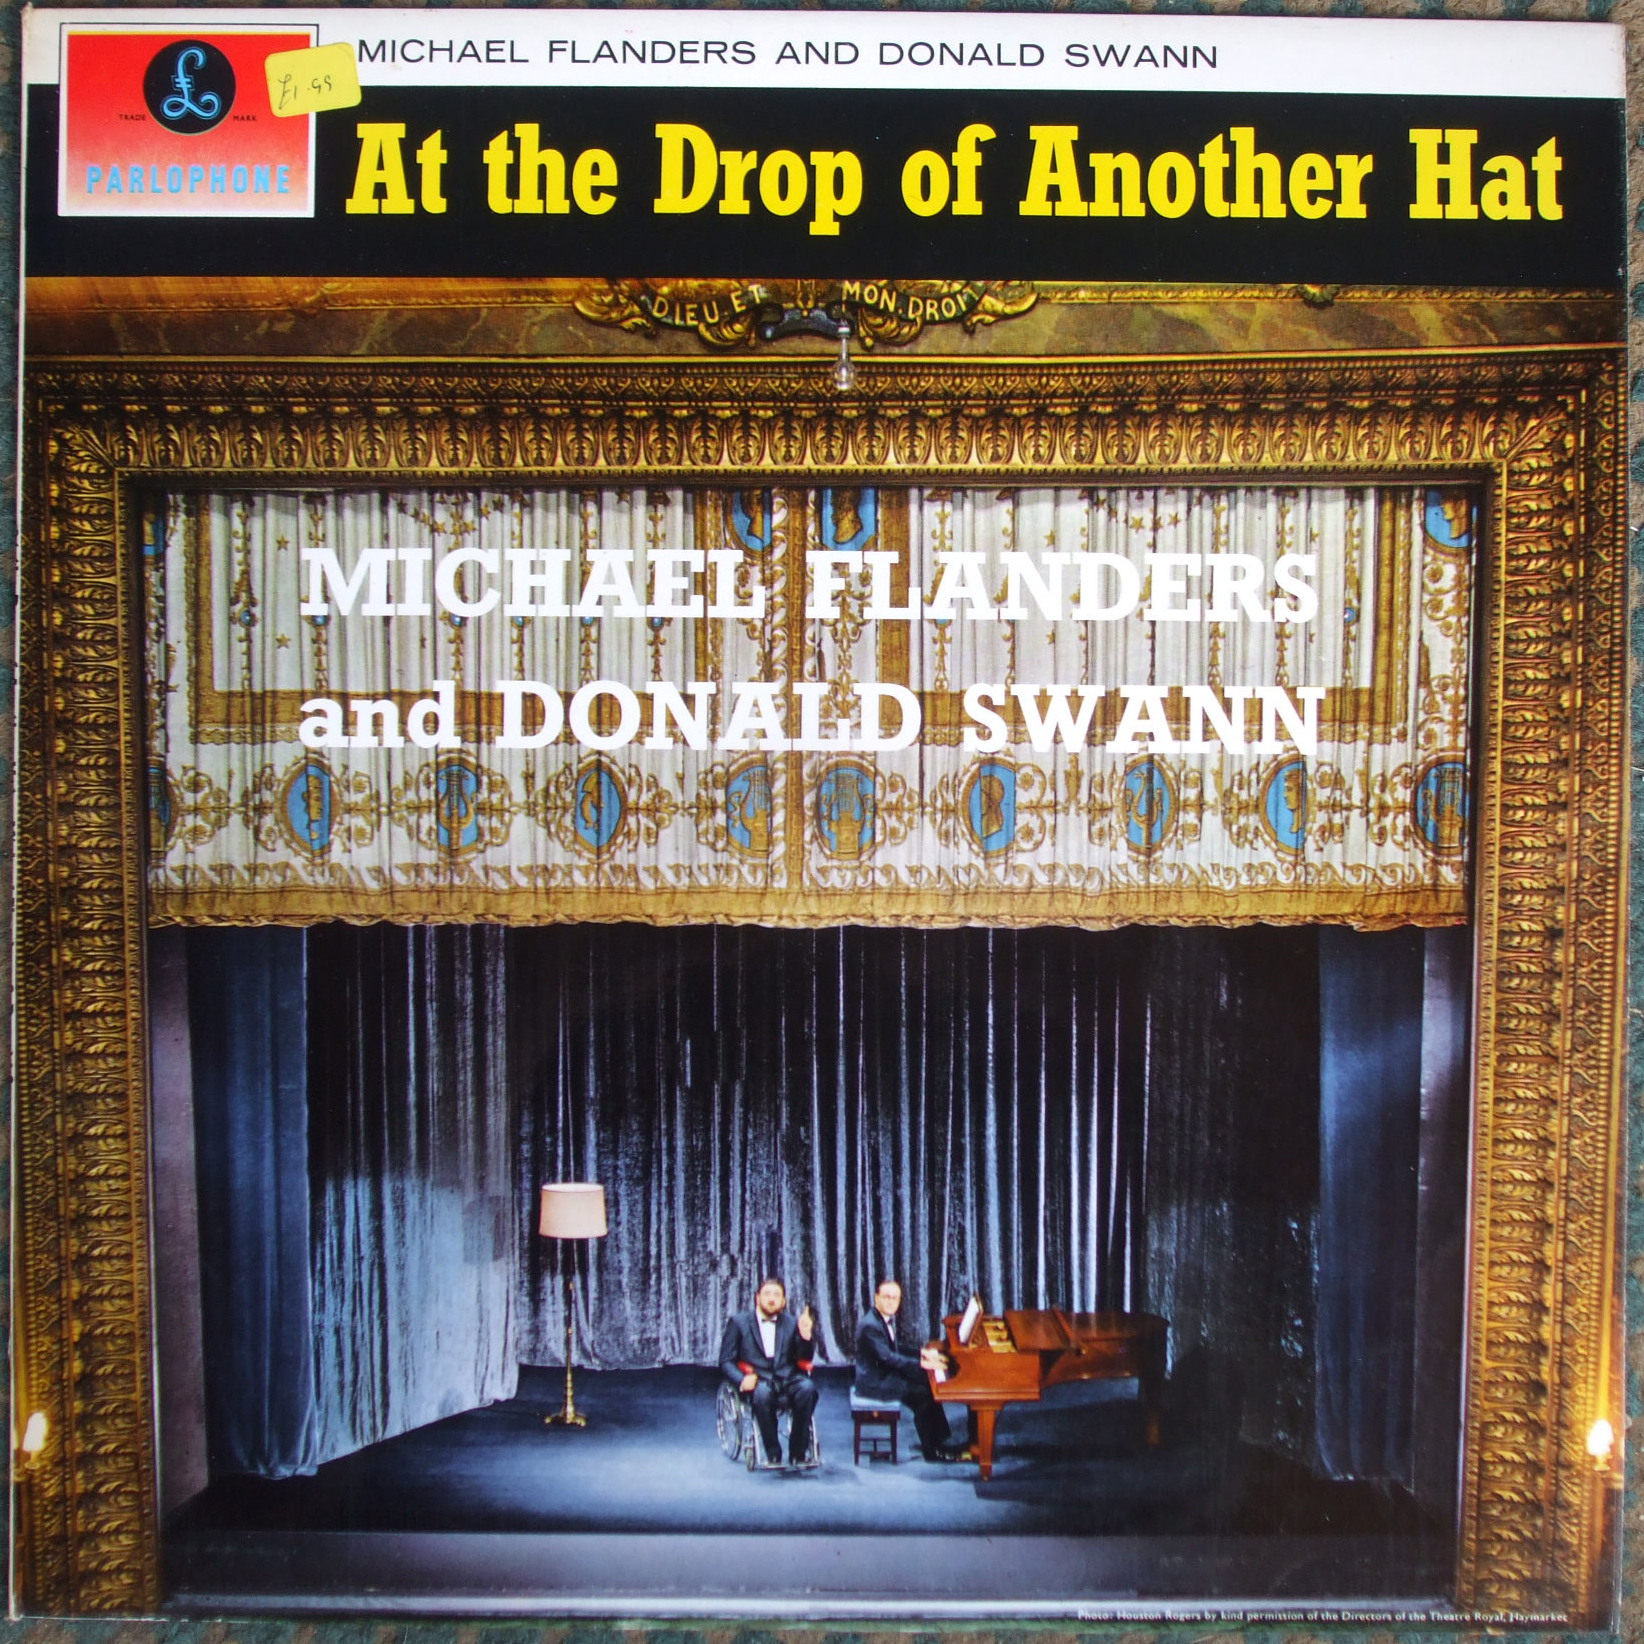 PCS 3052 At the Drop of Another Hat / Michael Flanders and Donald Swann